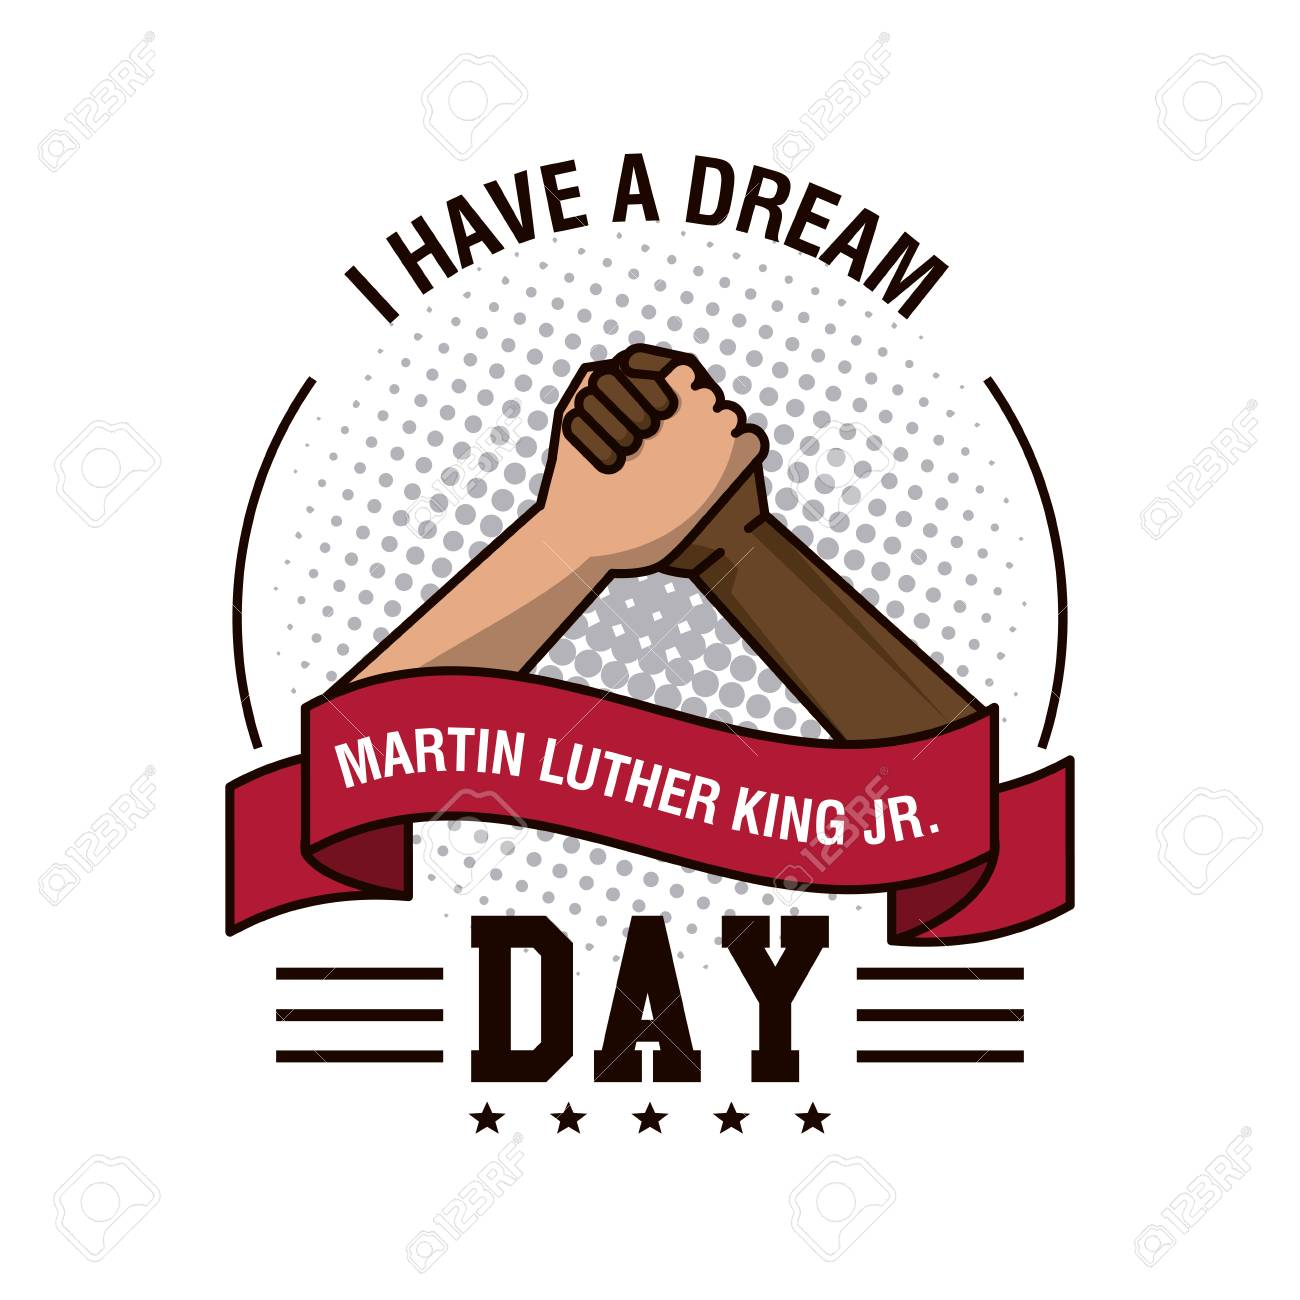 martin luther king jr day icon vector illustration graphic royalty rh 123rf com